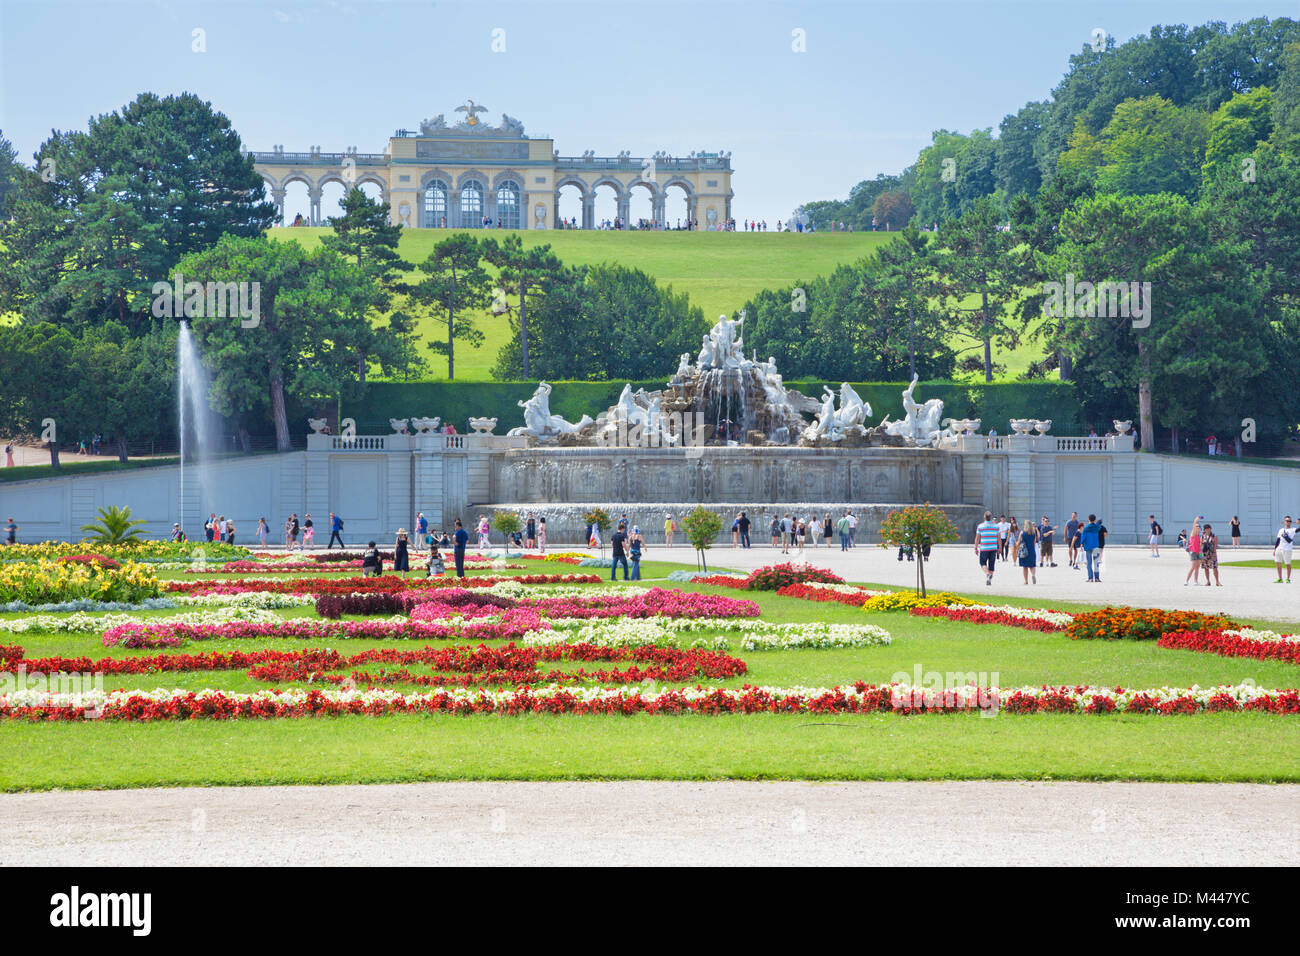 VIENNA, AUSTRIA - JULY 30, 2014: The castle Schonbrunn - Gloriette and garden and Neptune fountain. - Stock Image